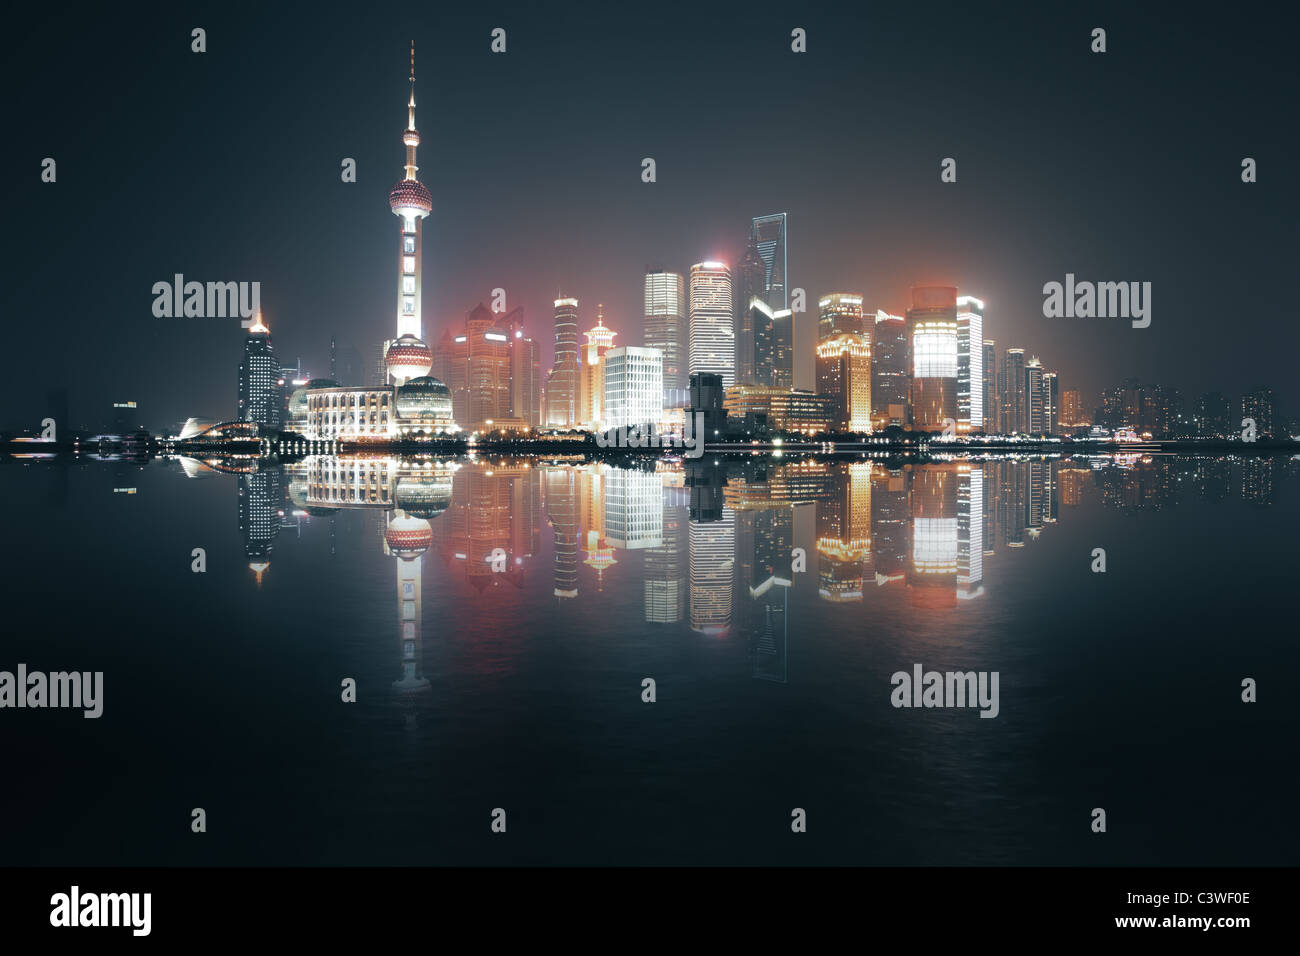 Night view of Shanghai, China - Stock Image